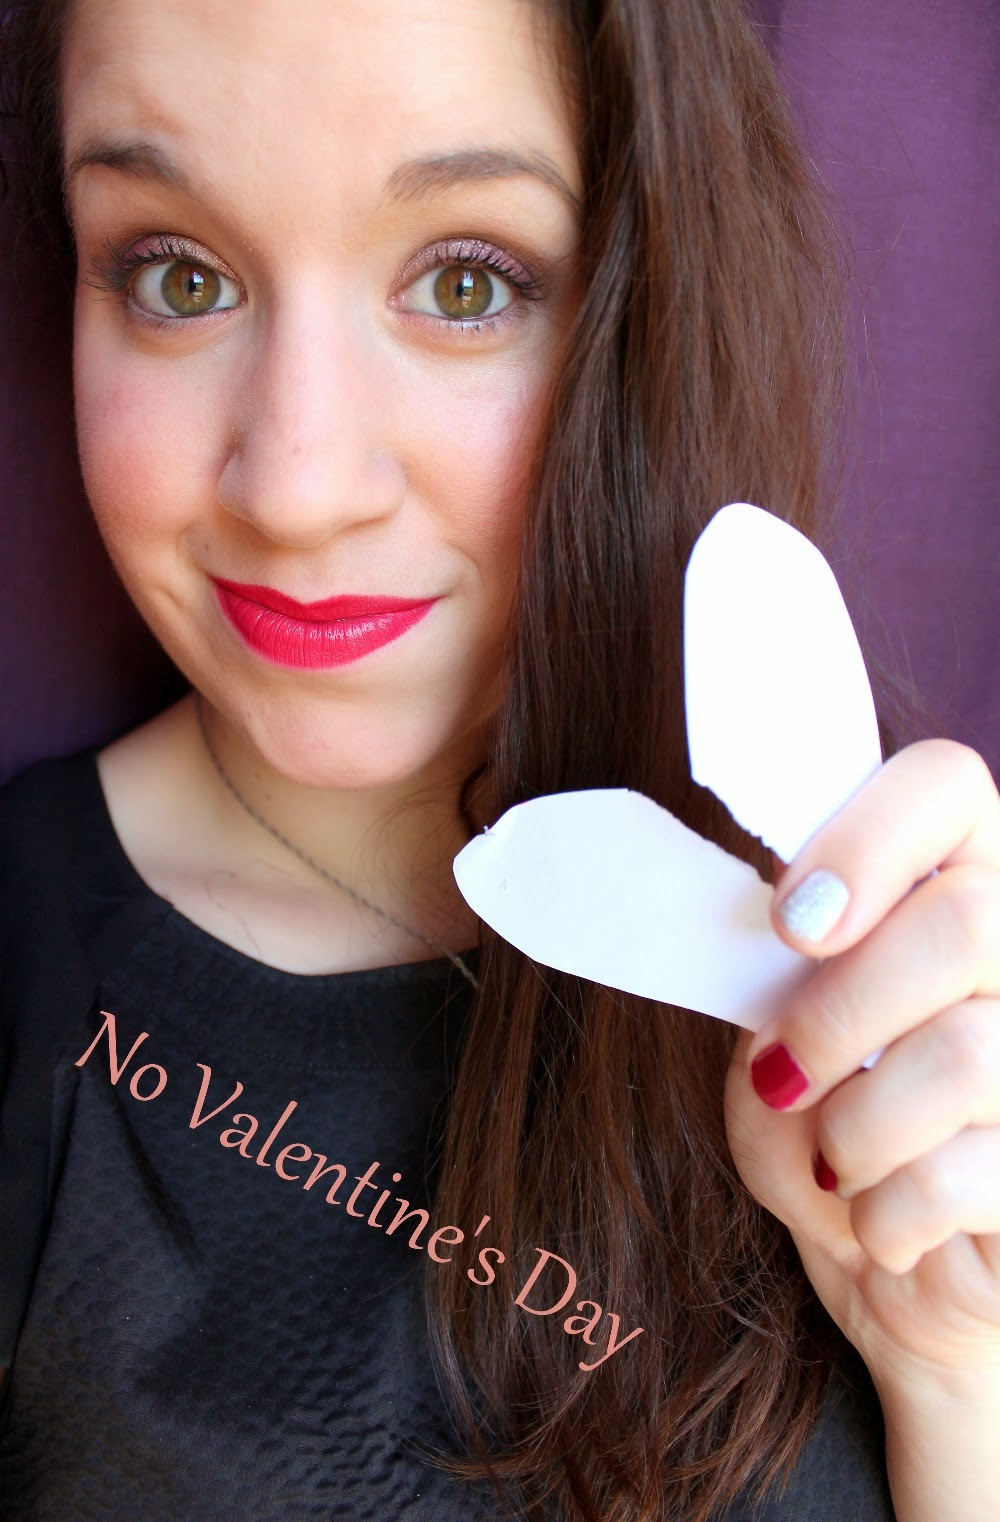 http://cosmetic-madness.blogspot.com/2015/02/un-make-up-pour-une-sortie-sans-valentin.html